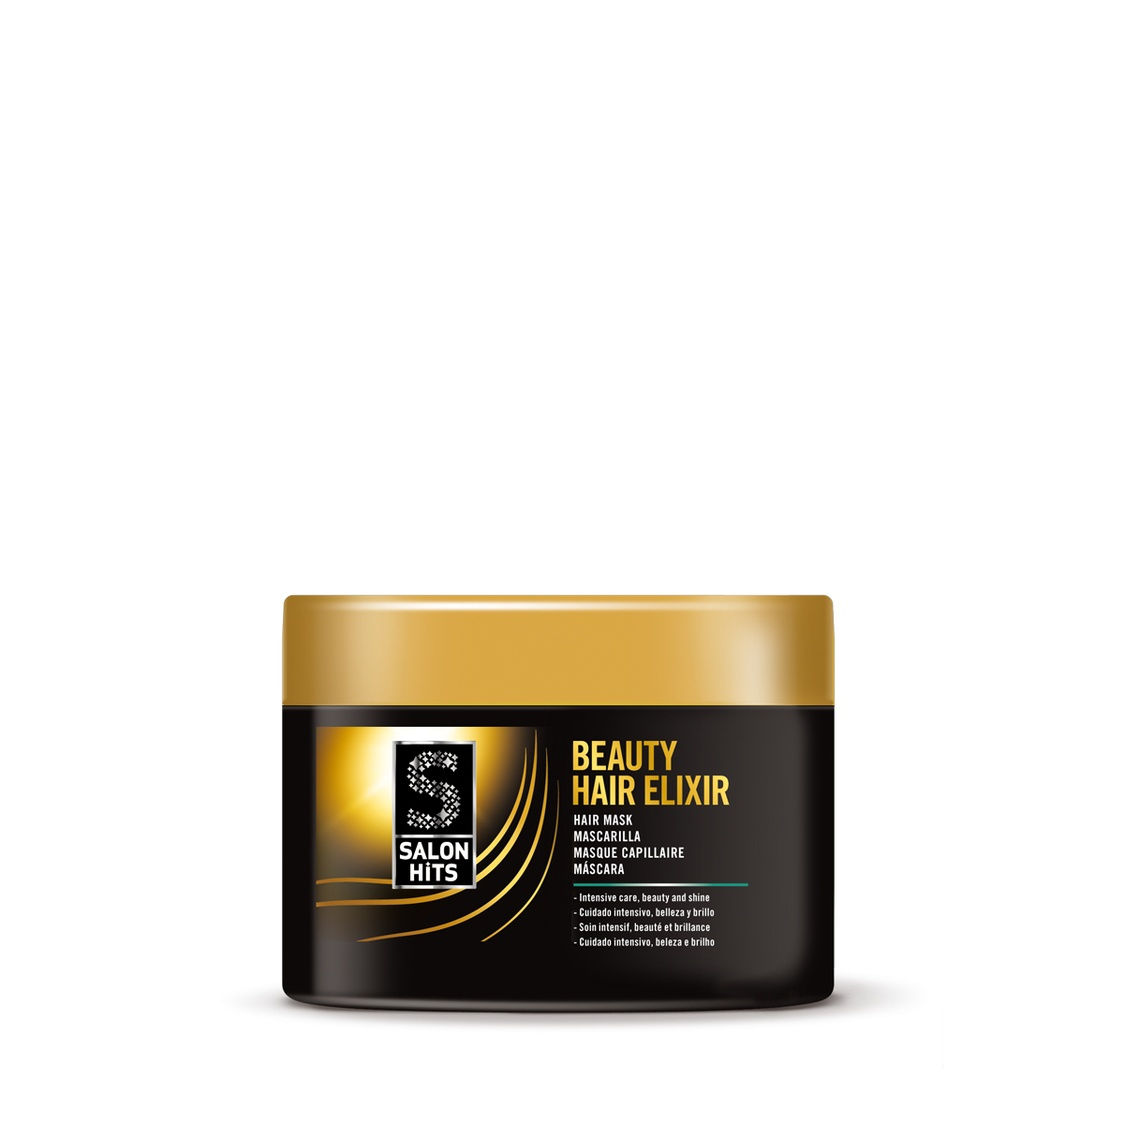 Salon Hits Beauty Hair Elixir Mask